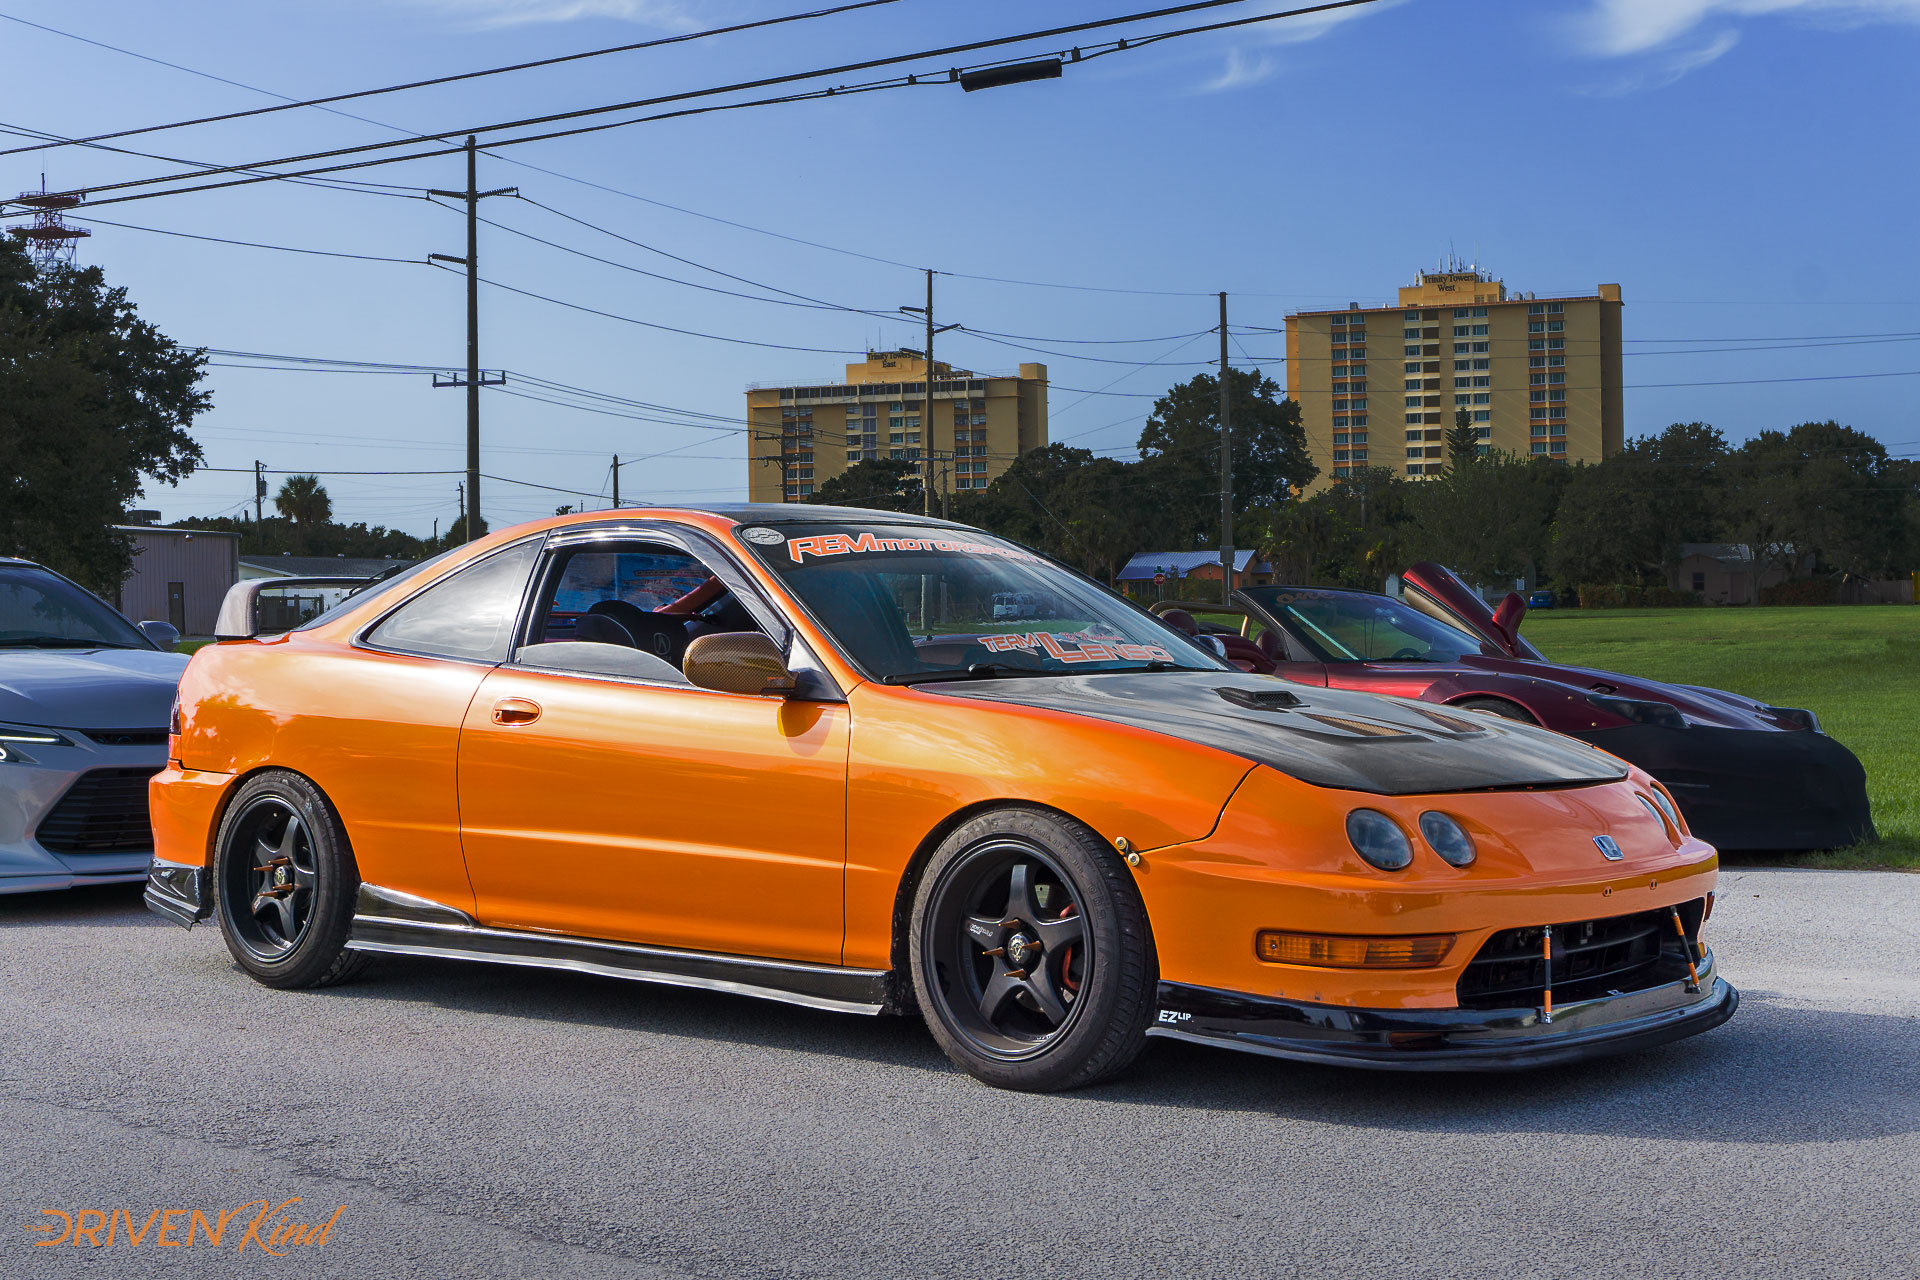 Acura Integra Daily Driven Inc. Presents Florida's Finest Melbourne FL Auditorium coverage by The Driven Kind